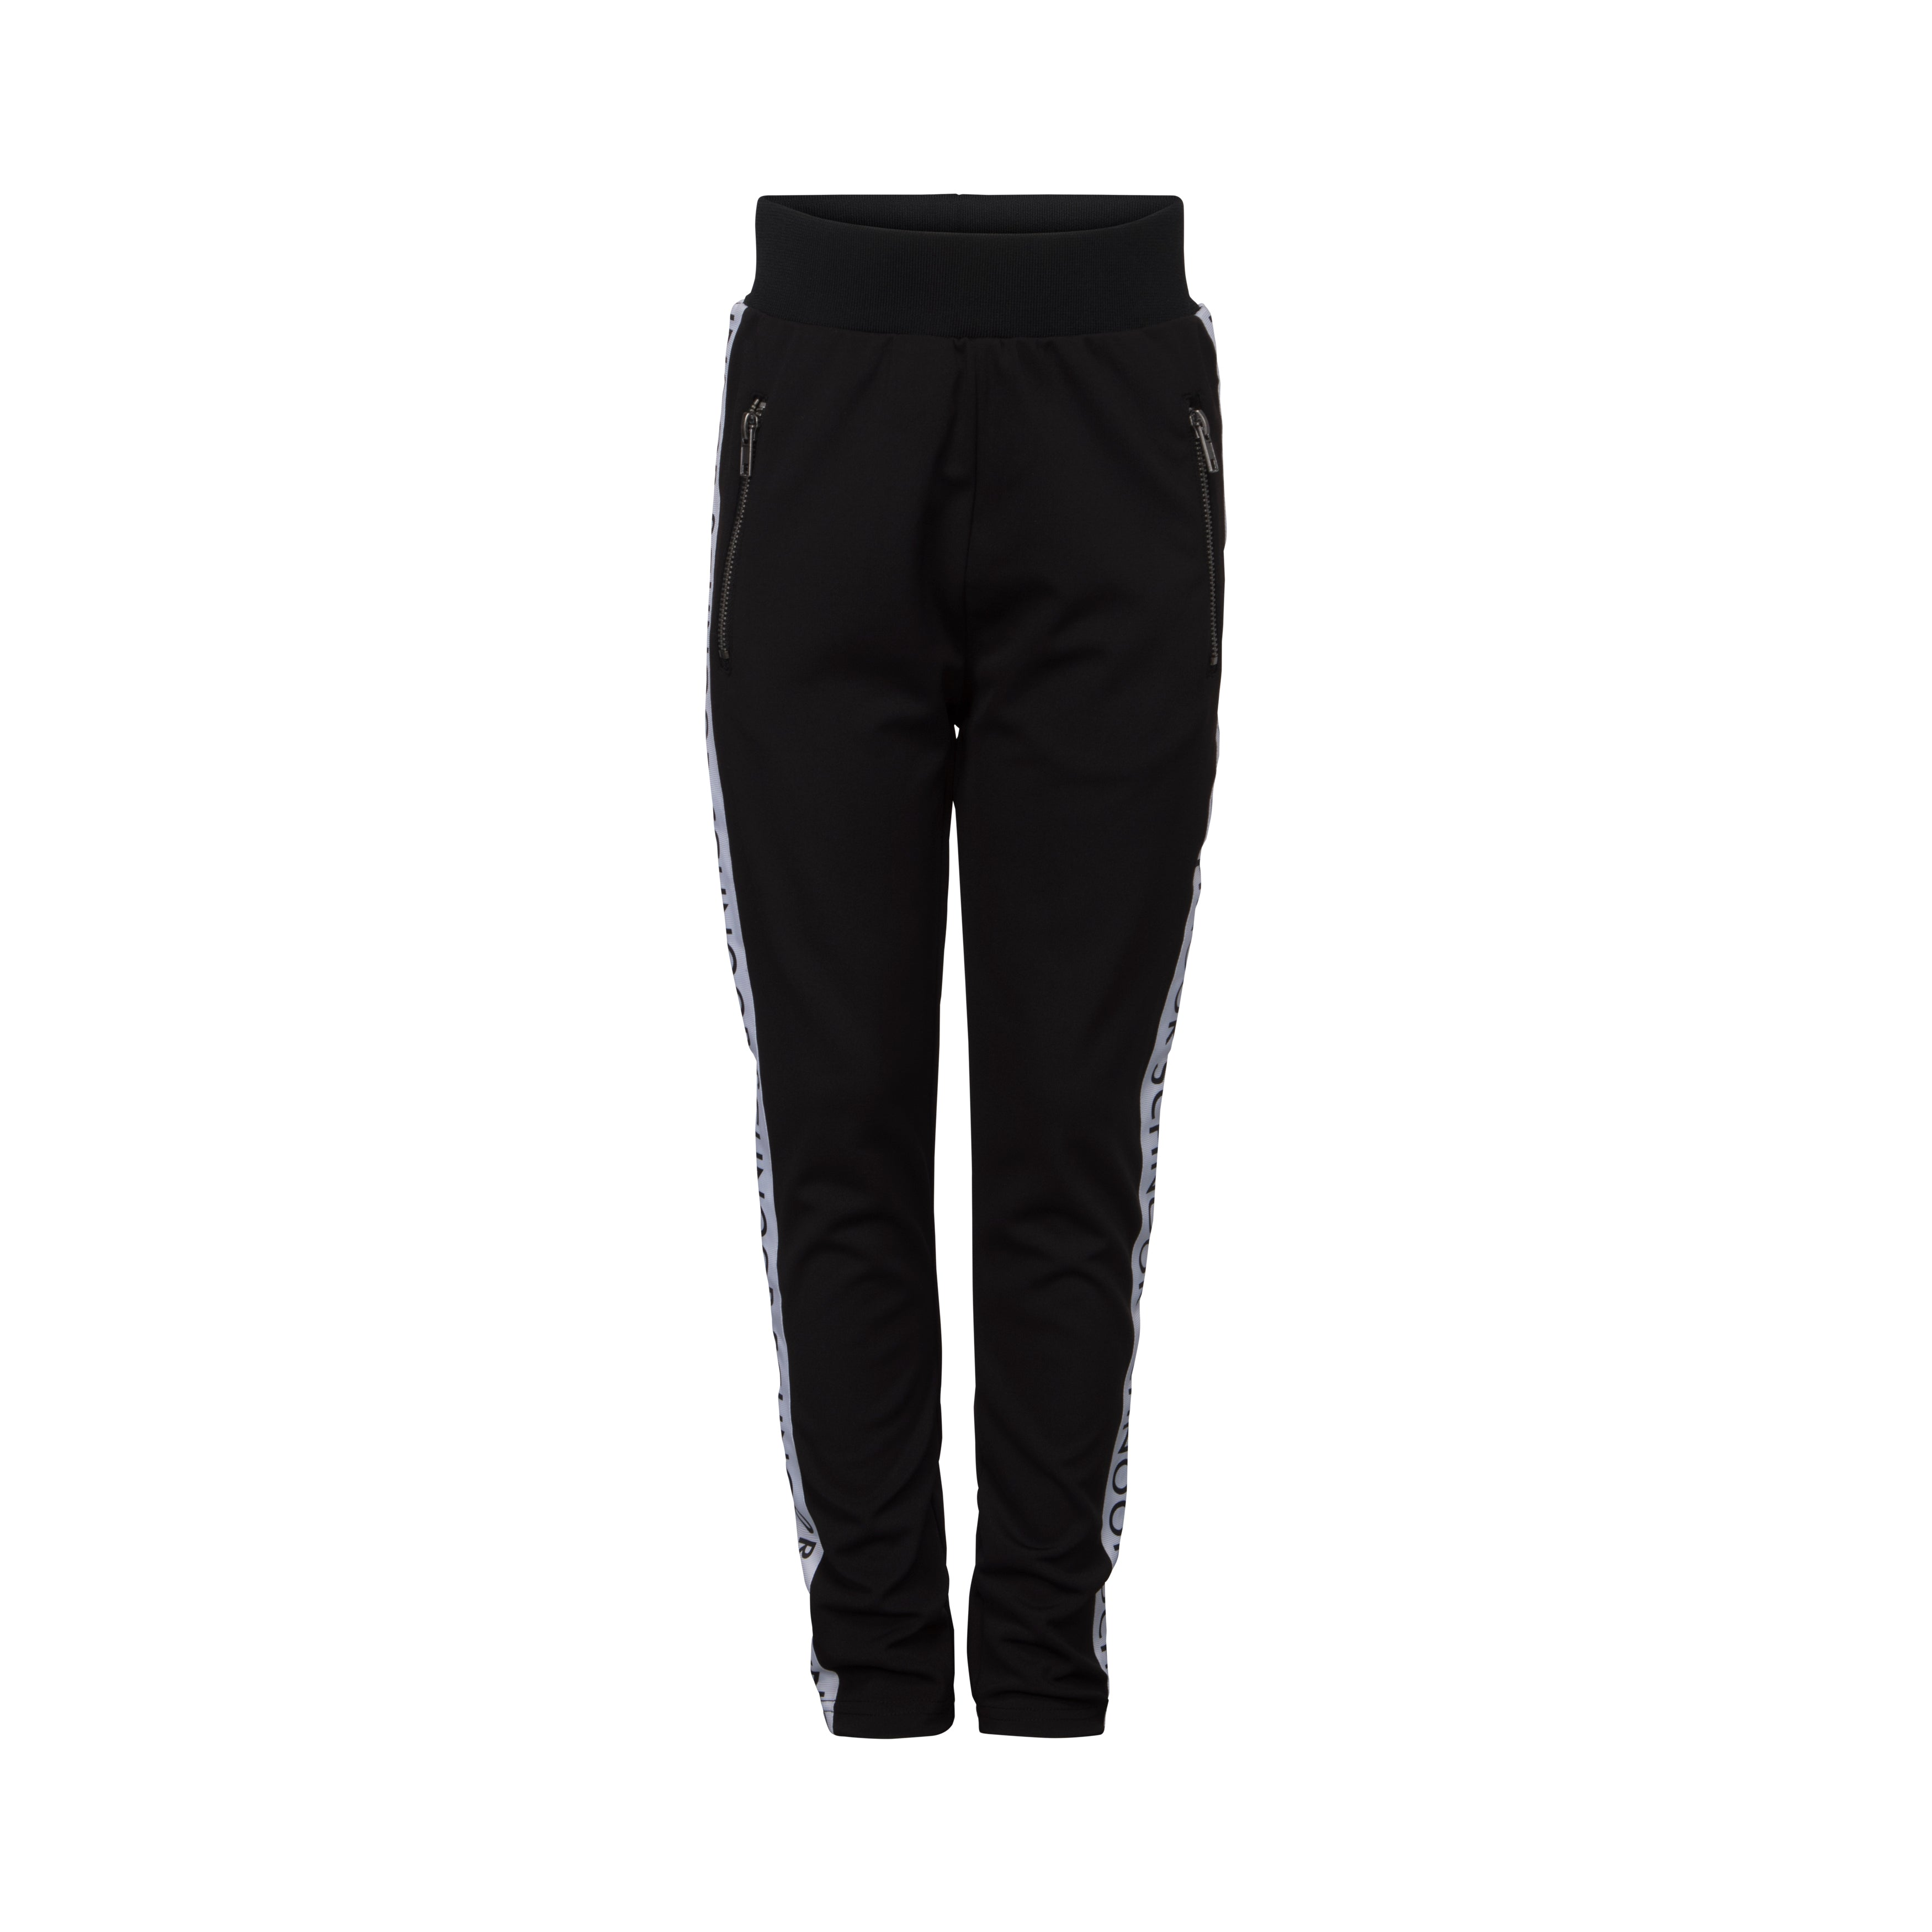 Petit by Sofie Schnoor - Pants, Schnoor - Black